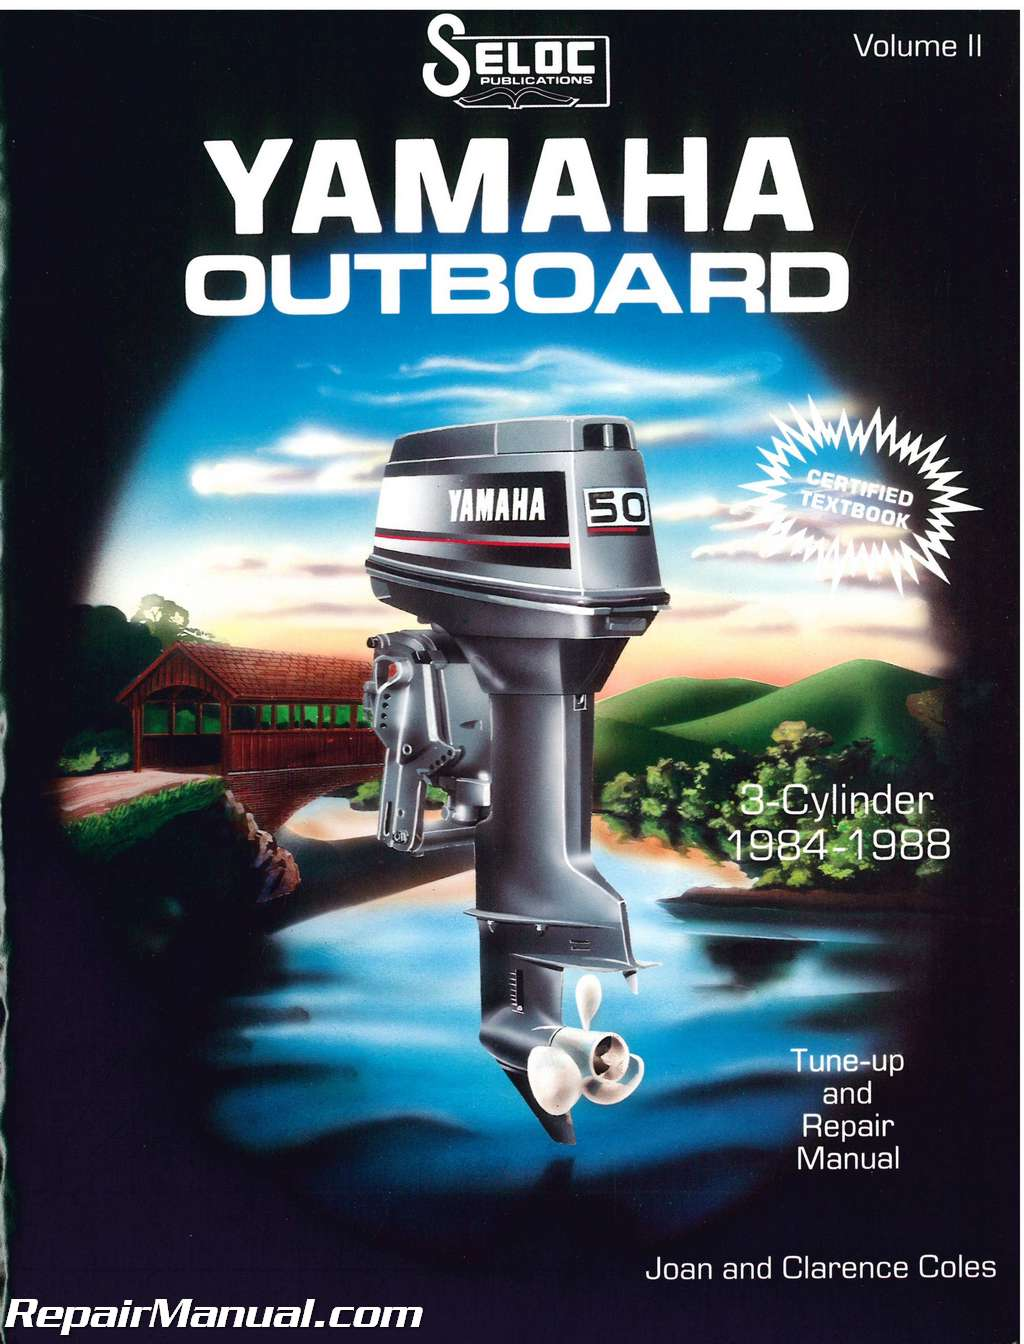 1984-1988 Yamaha 3 Cylinder Outboard Engine Repair Manual by Seloc